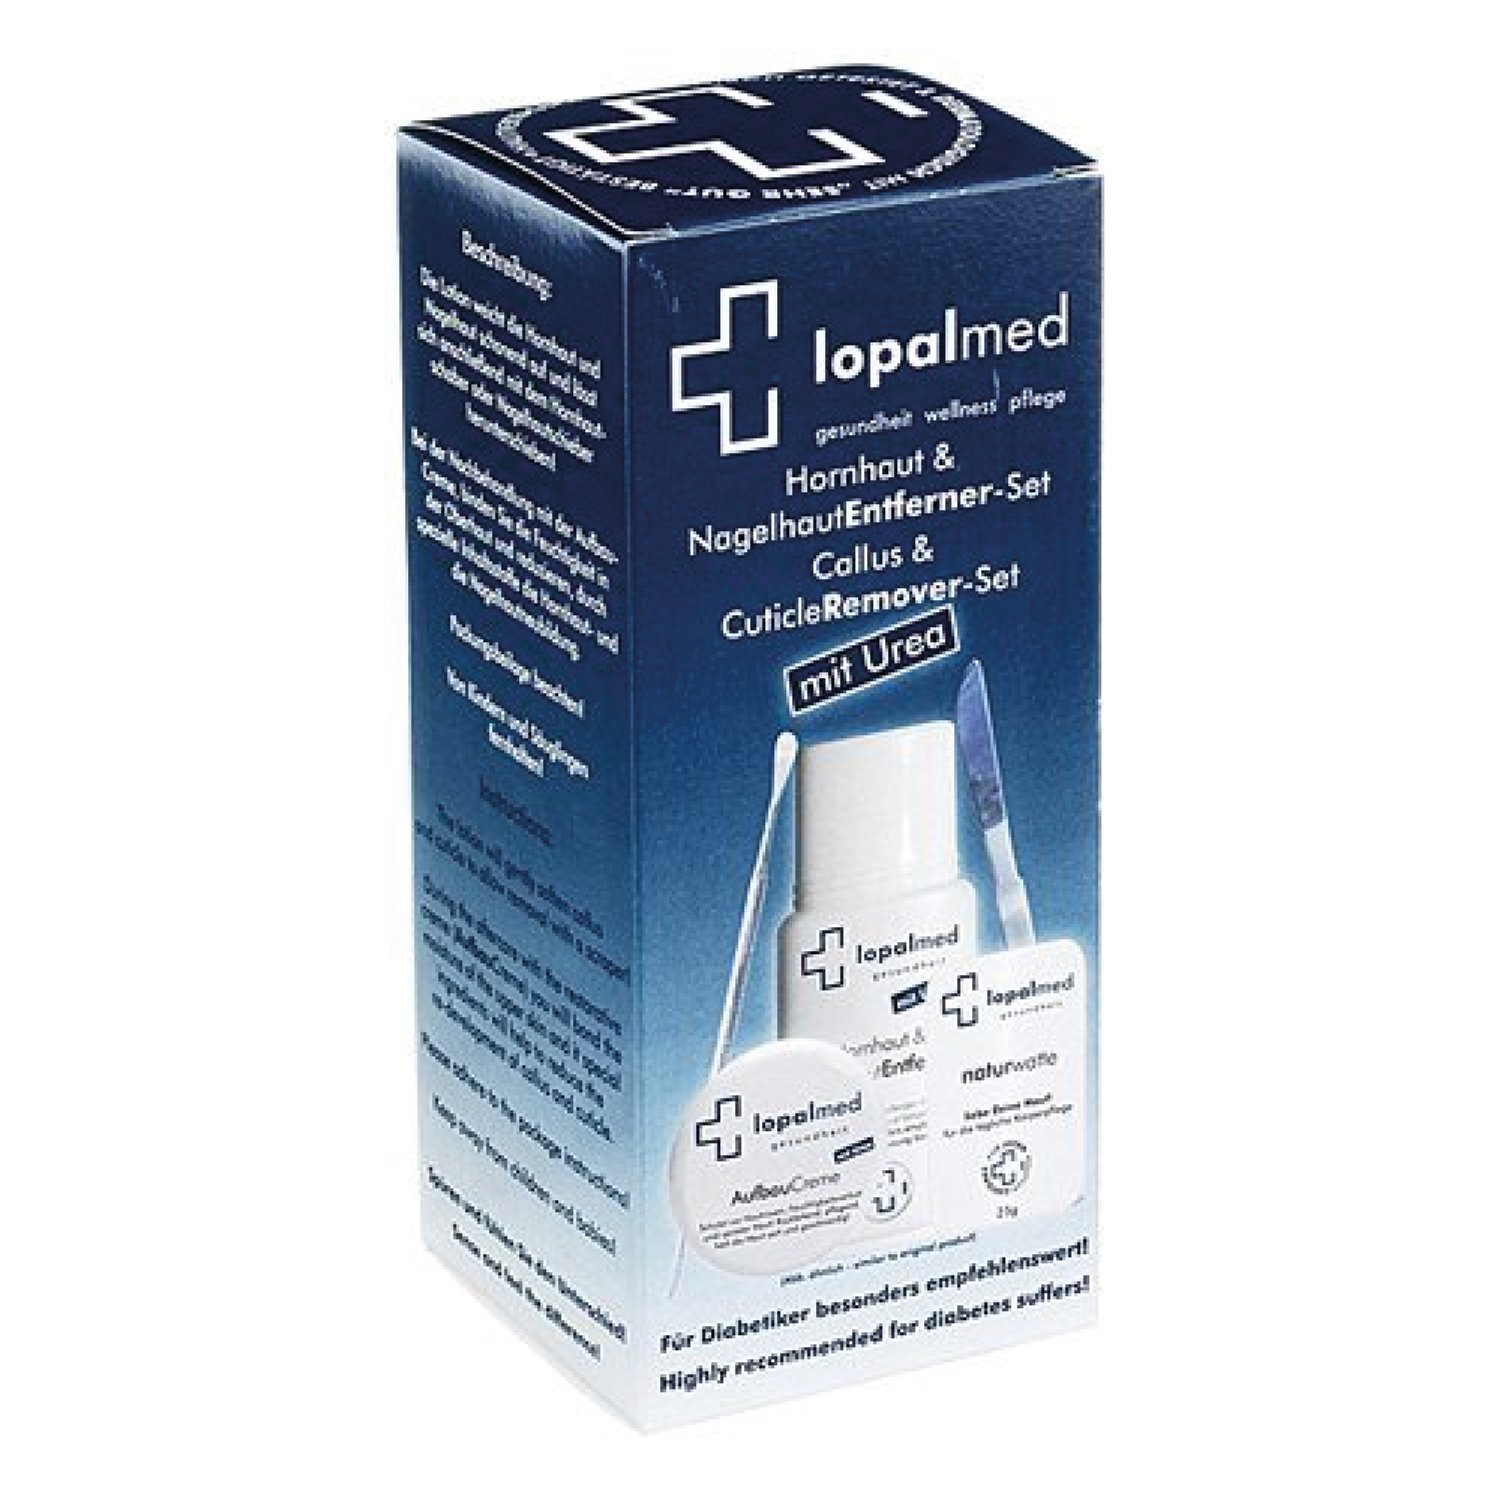 Hard Skin Remover and cuticle smoother - Lopalmed Kit smooths out every cuticle or hard skin on feet (also cracked) Lopal e.K